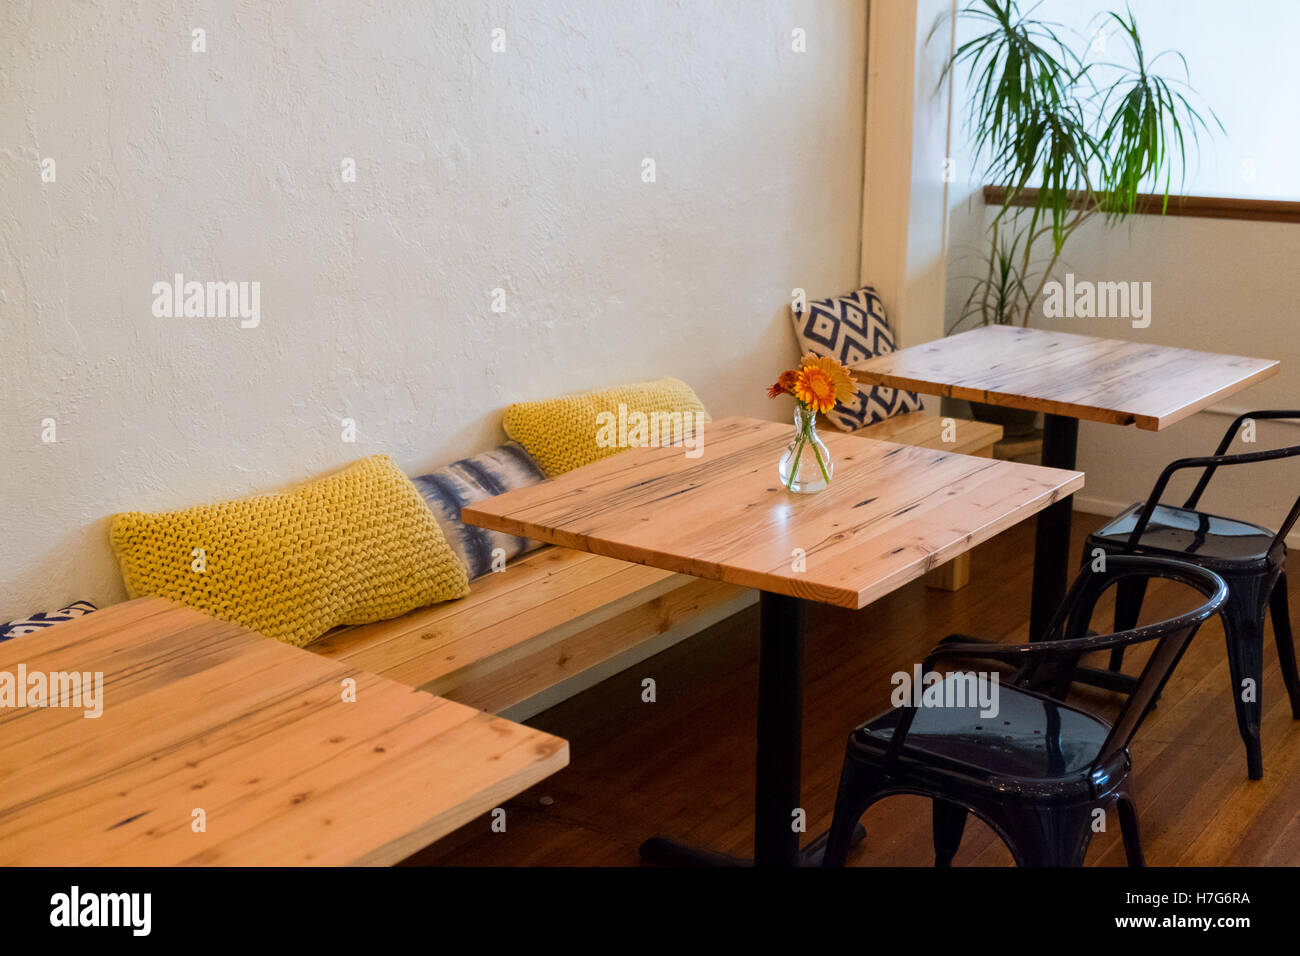 Bench seating at a coffee shop restaurant with small cafe tables and